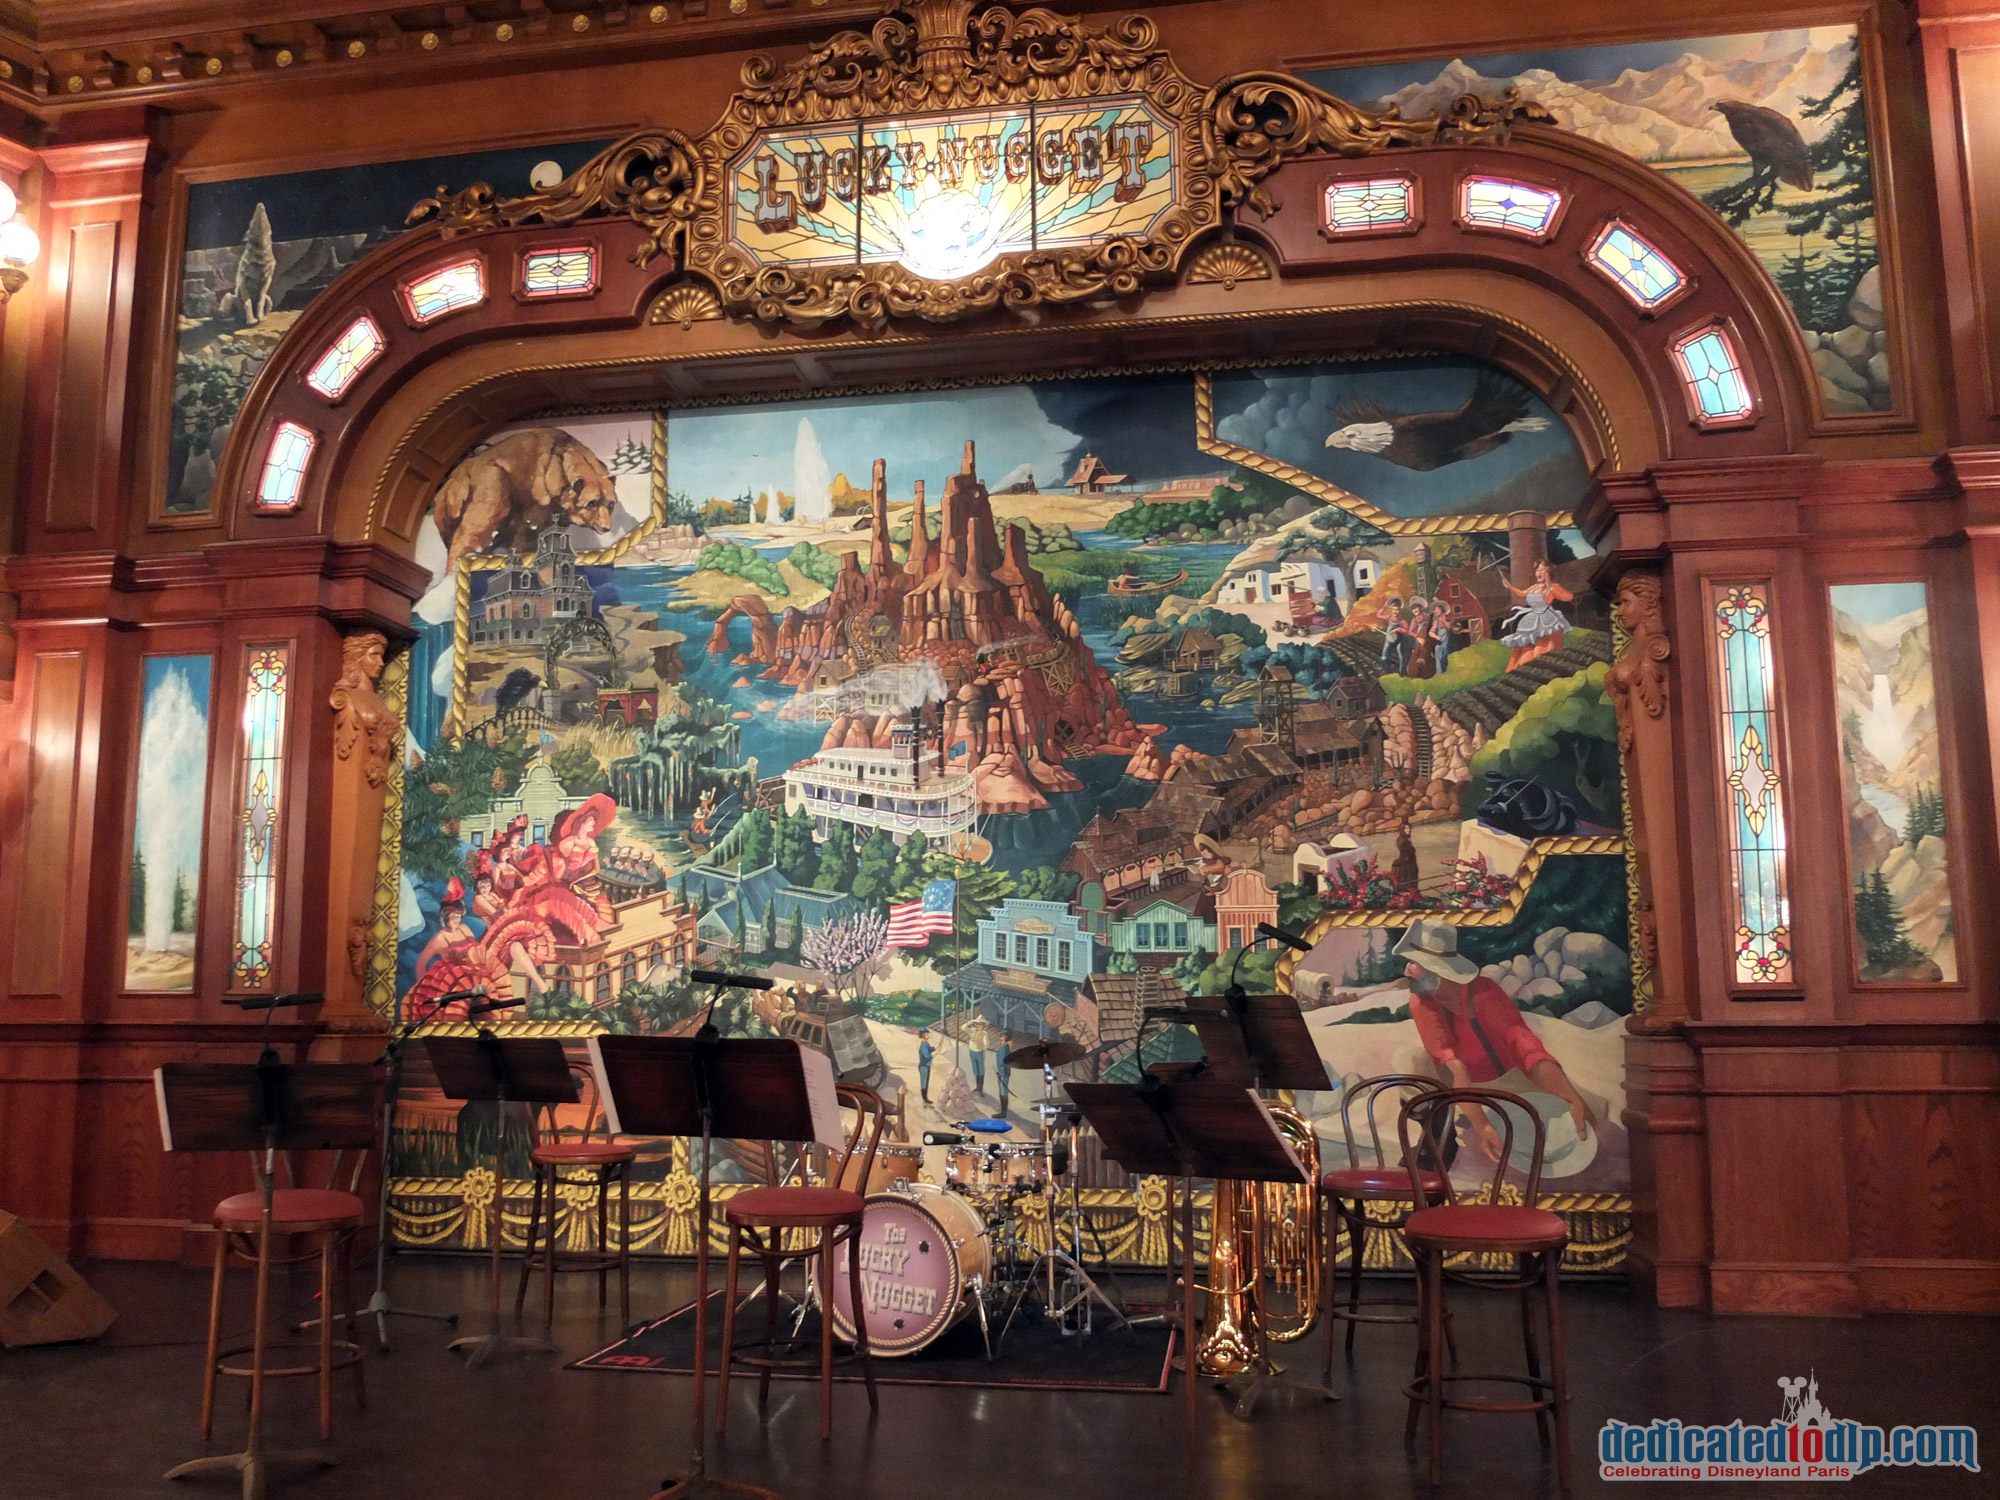 Dedicated to dlp celebrating disneyland paris for Disneyland mural